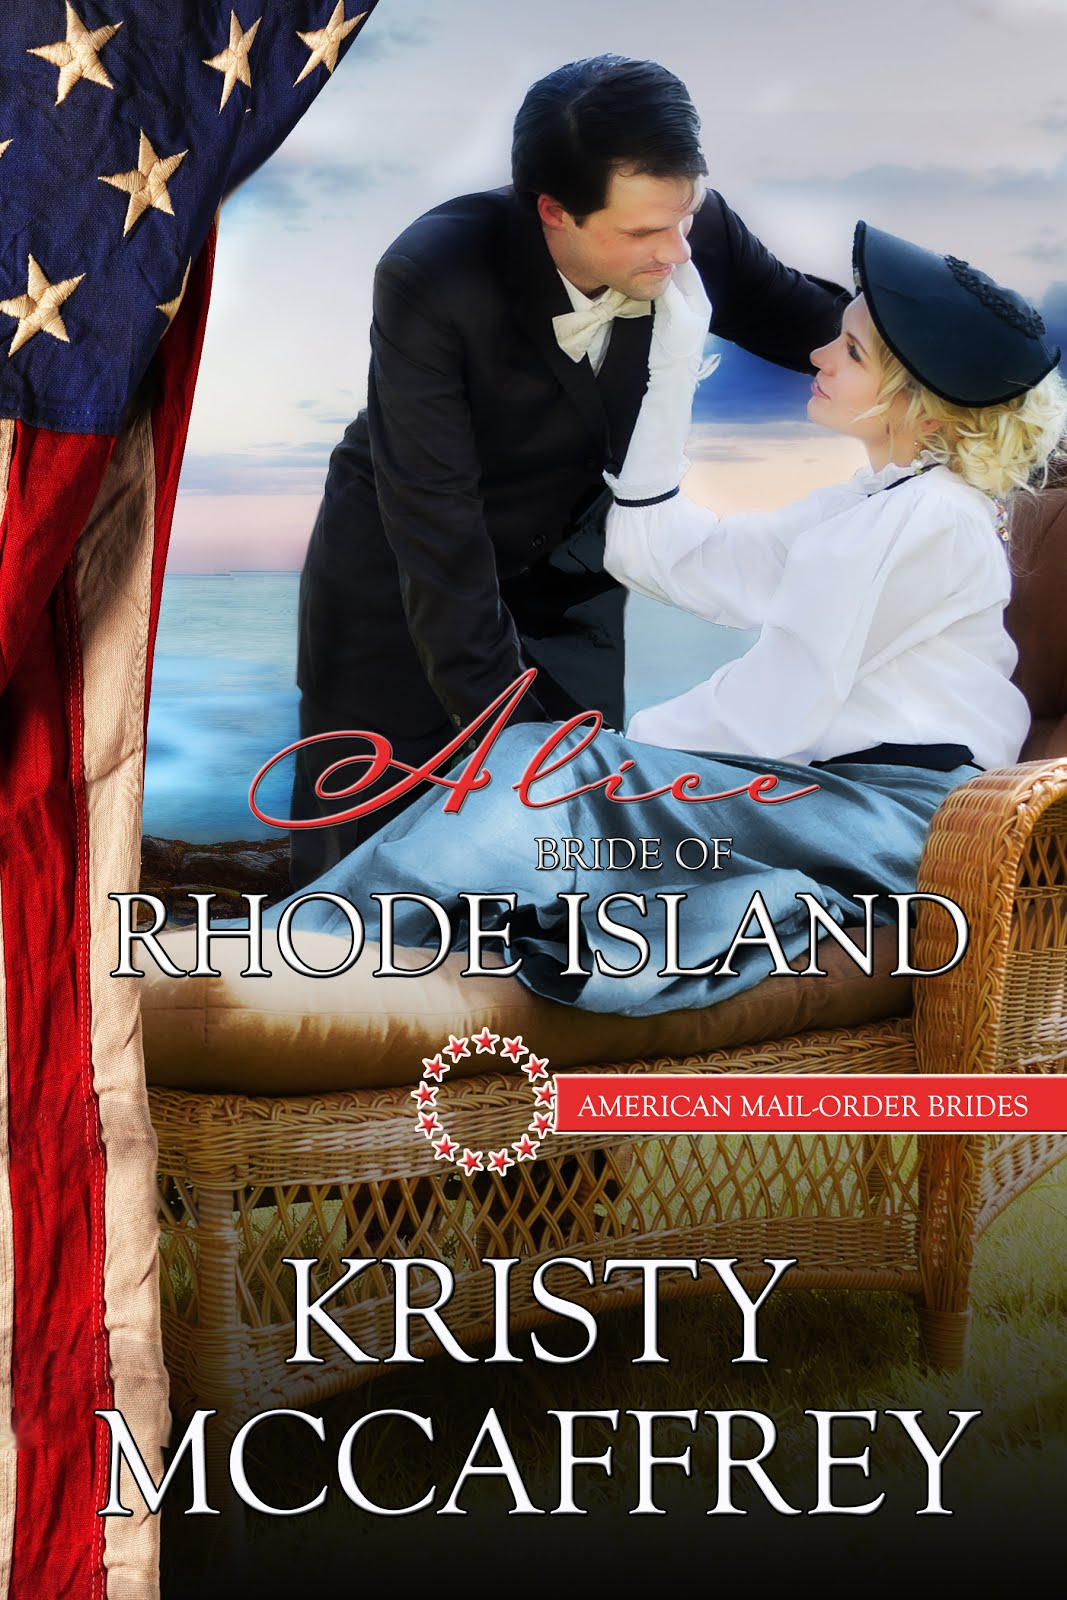 American Mail-Order Brides Series